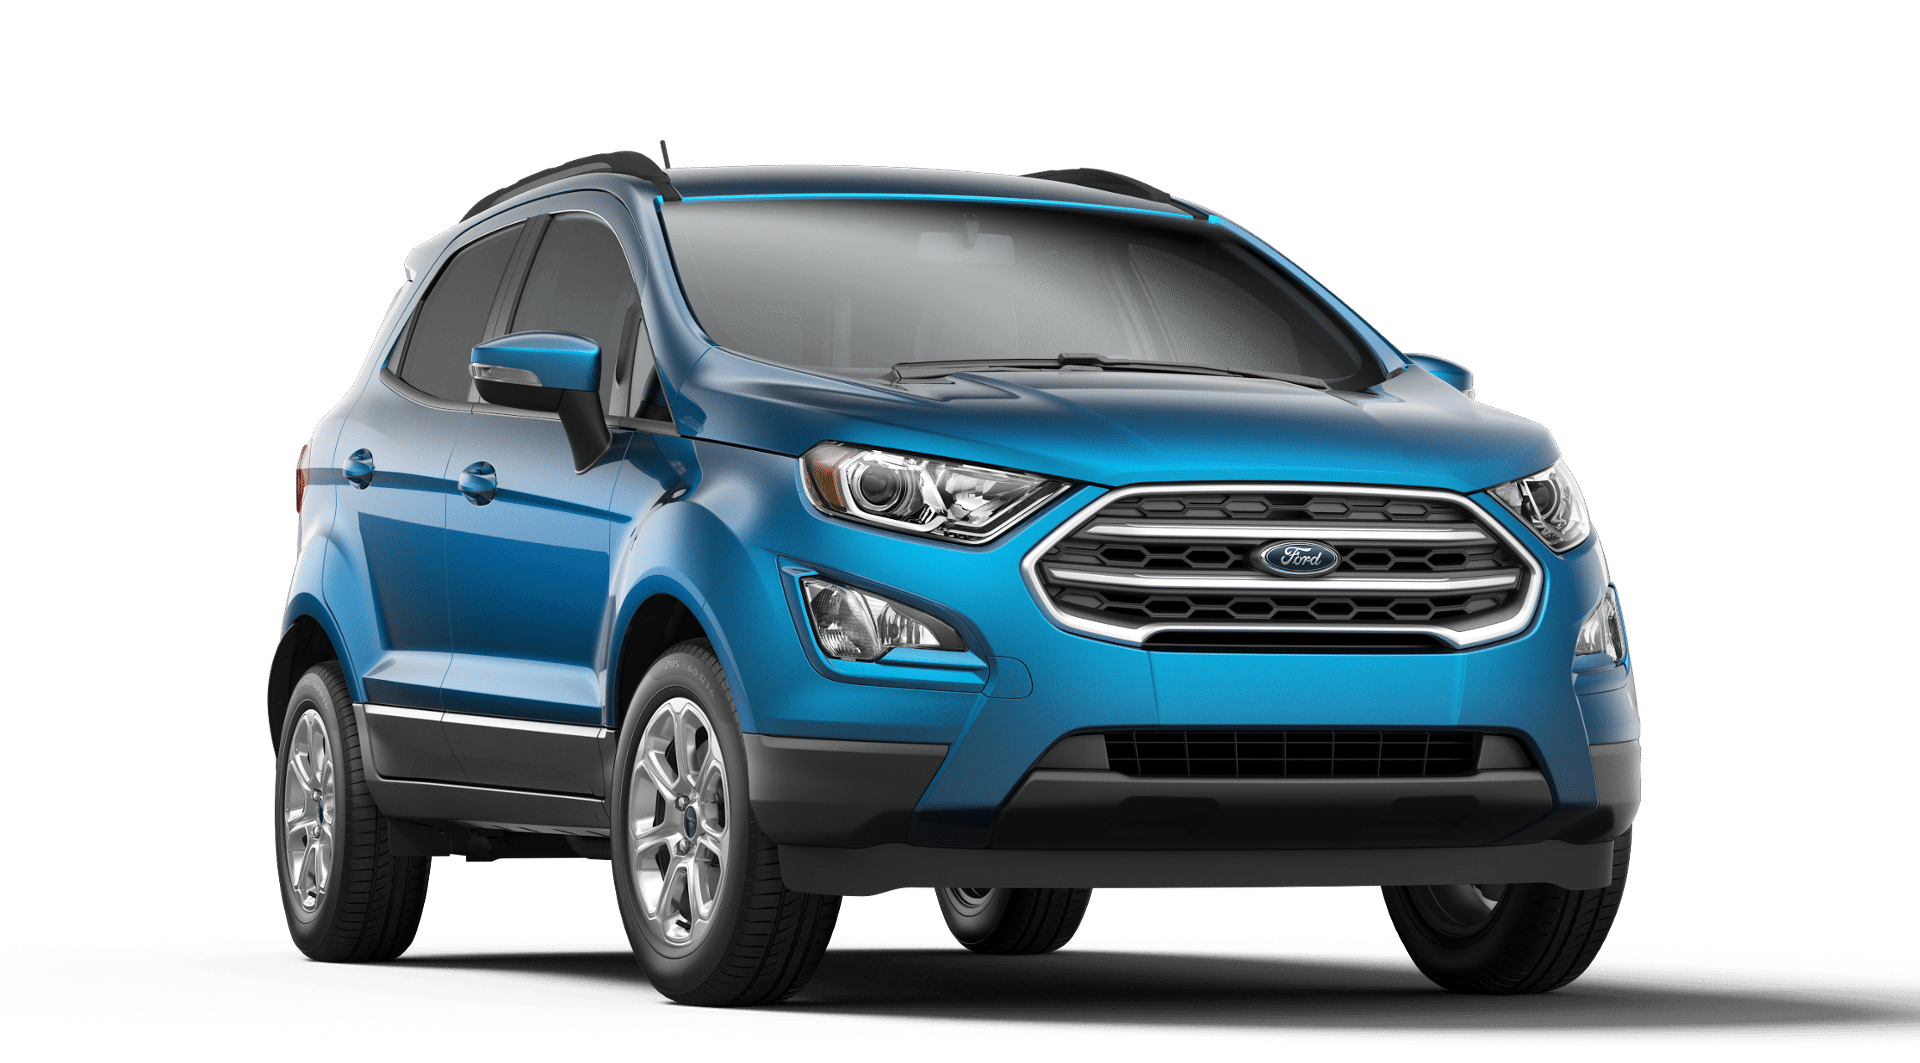 2019-Ford-EcoSport-Blue-Candy-Exterior-Color_o